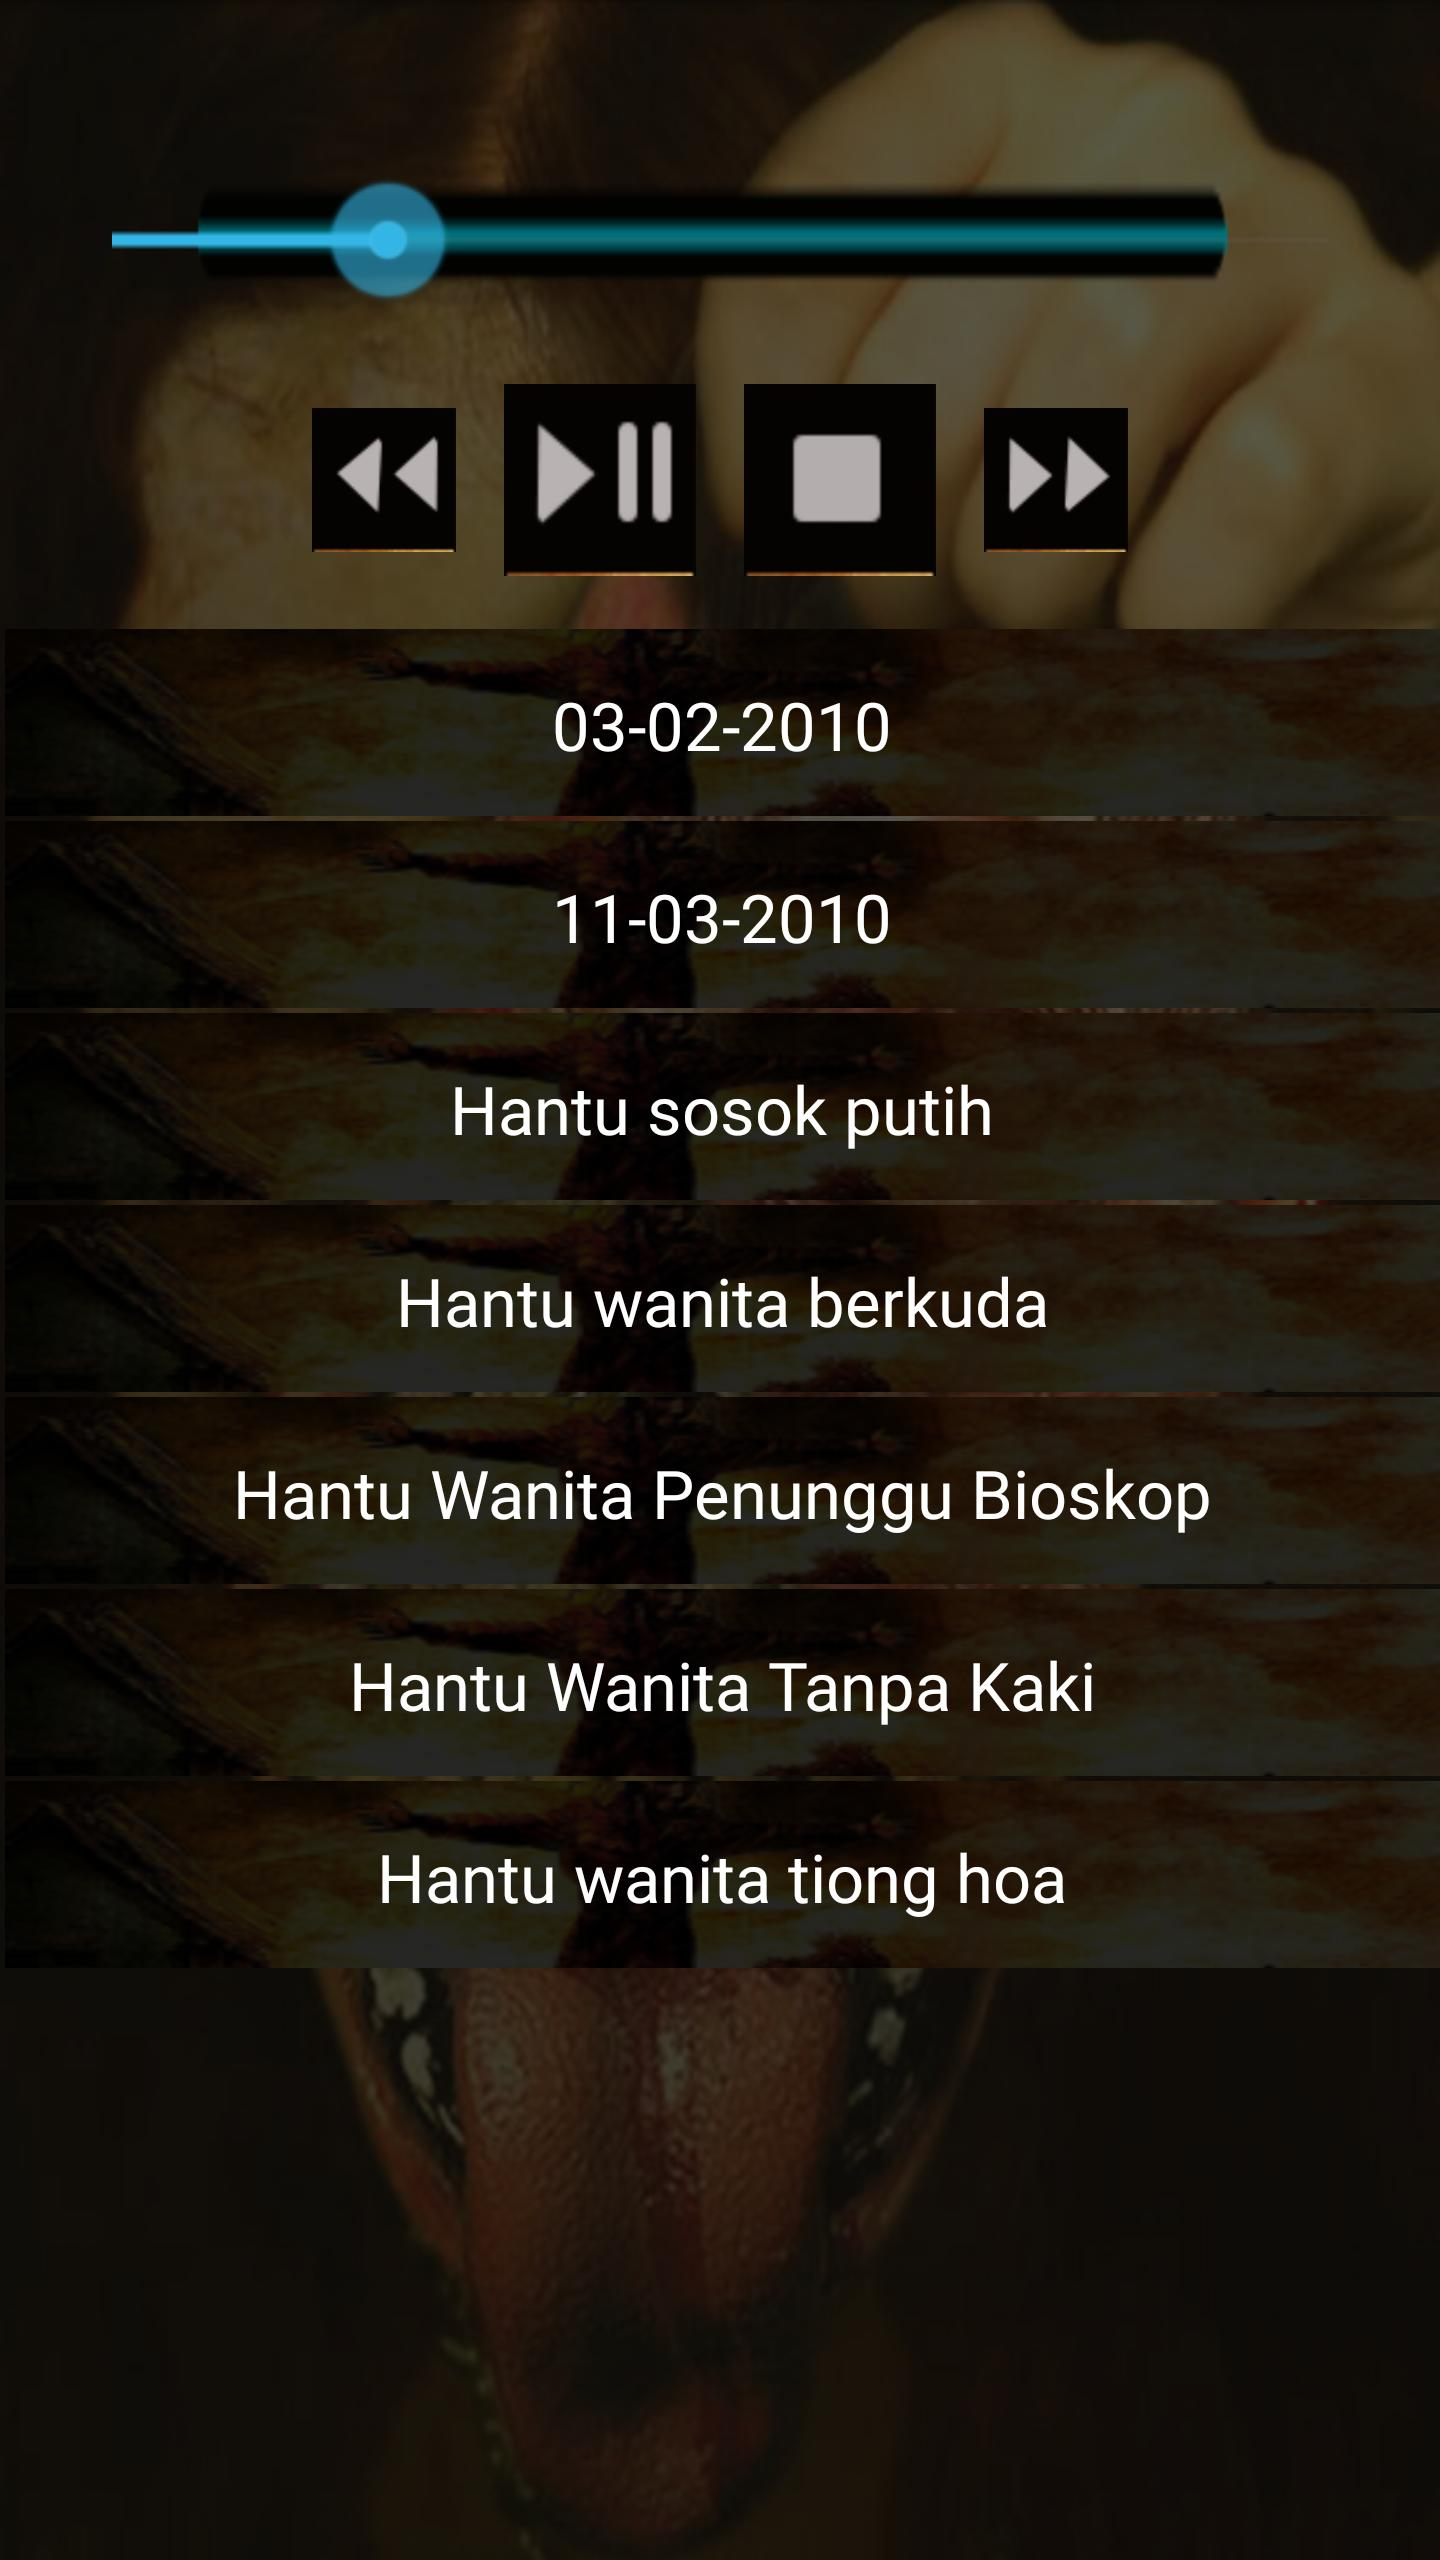 Cerita Horor Indonesia For Android APK Download